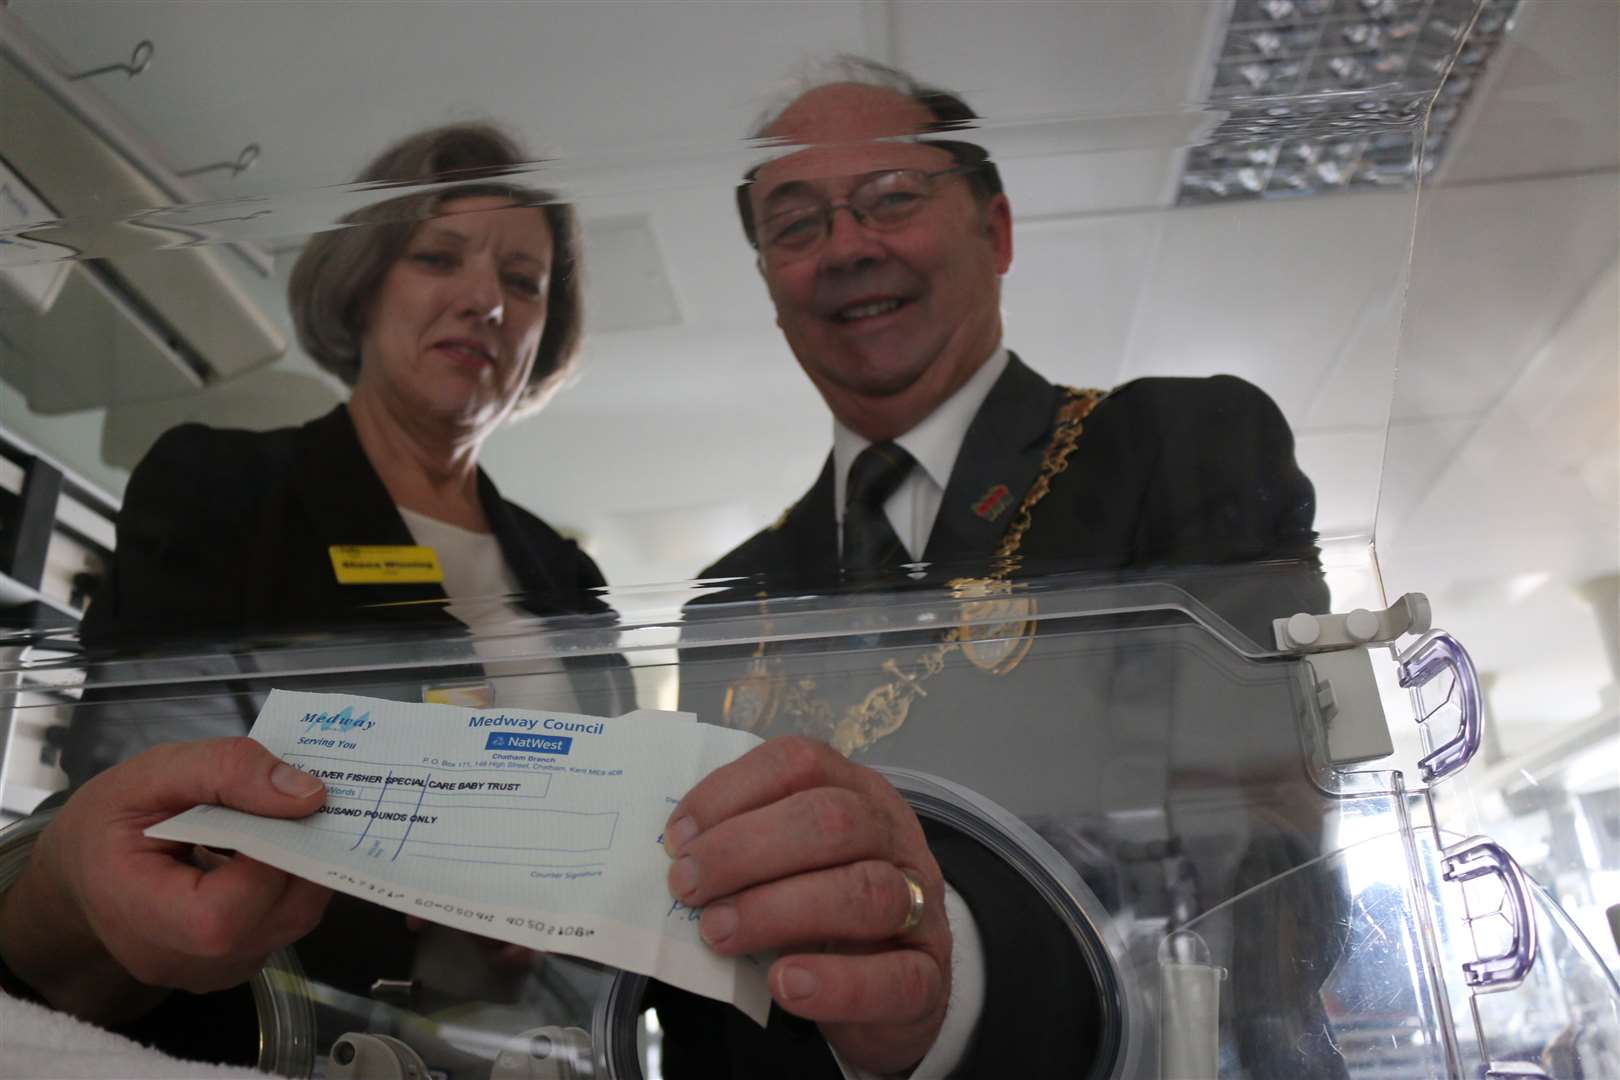 Mayor of Medway Cllr Barry Kemp giving a cheque to the Neo-natal unit, Medway Maritime Hospital